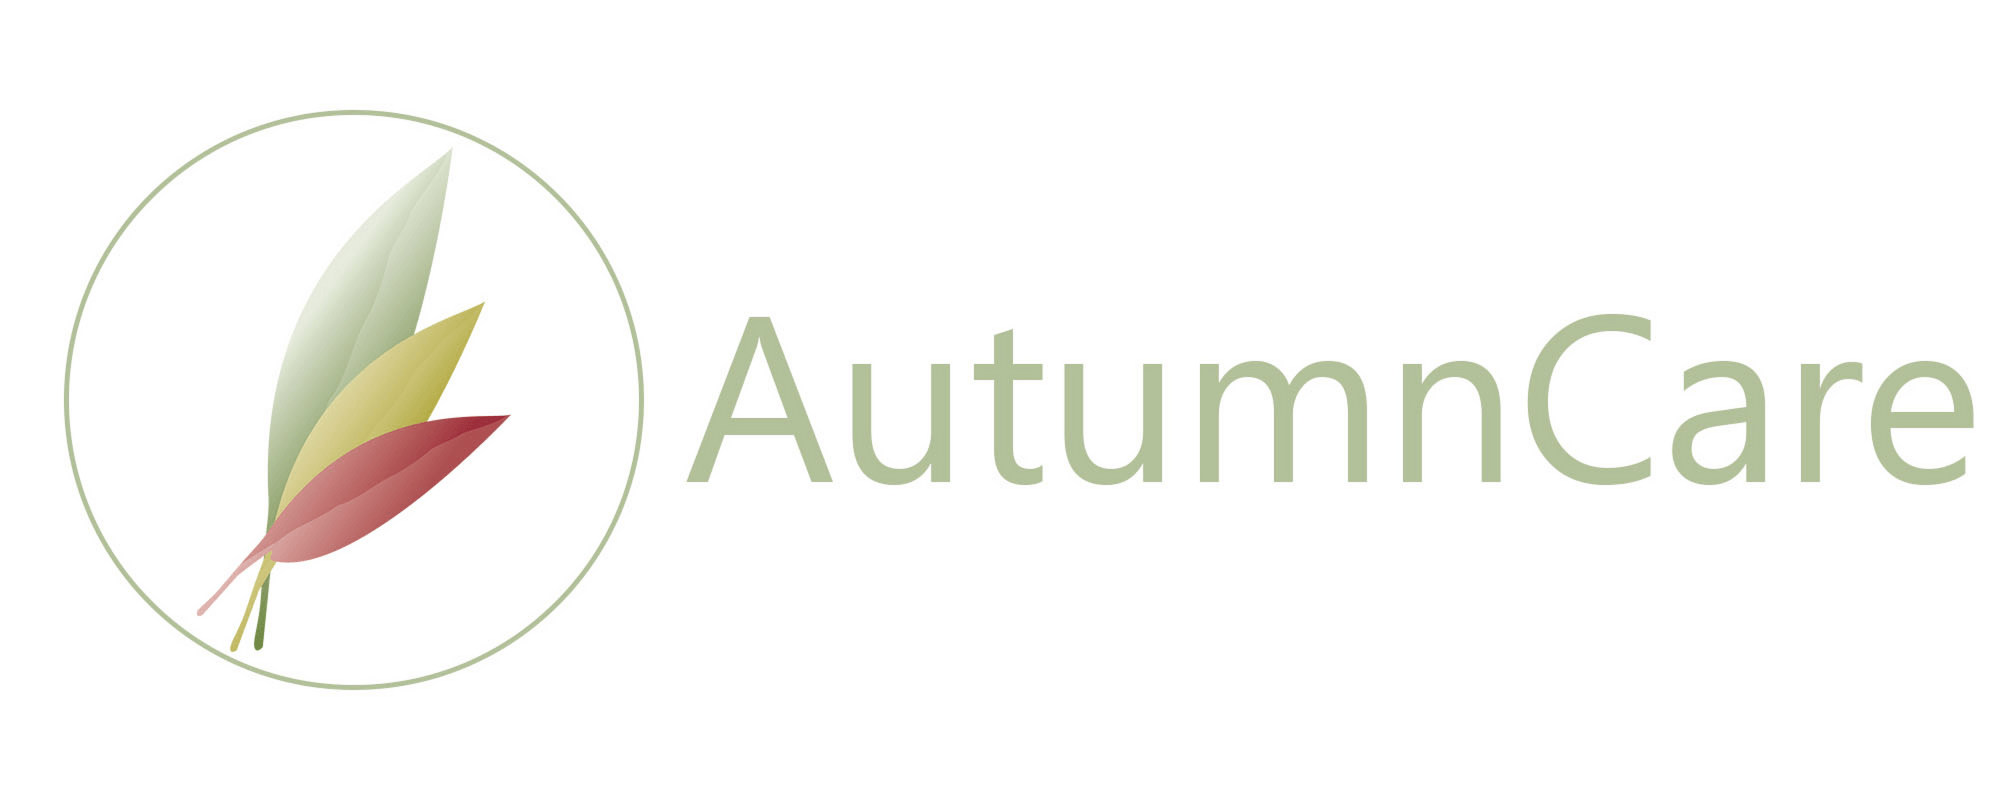 AutumnCare Limited